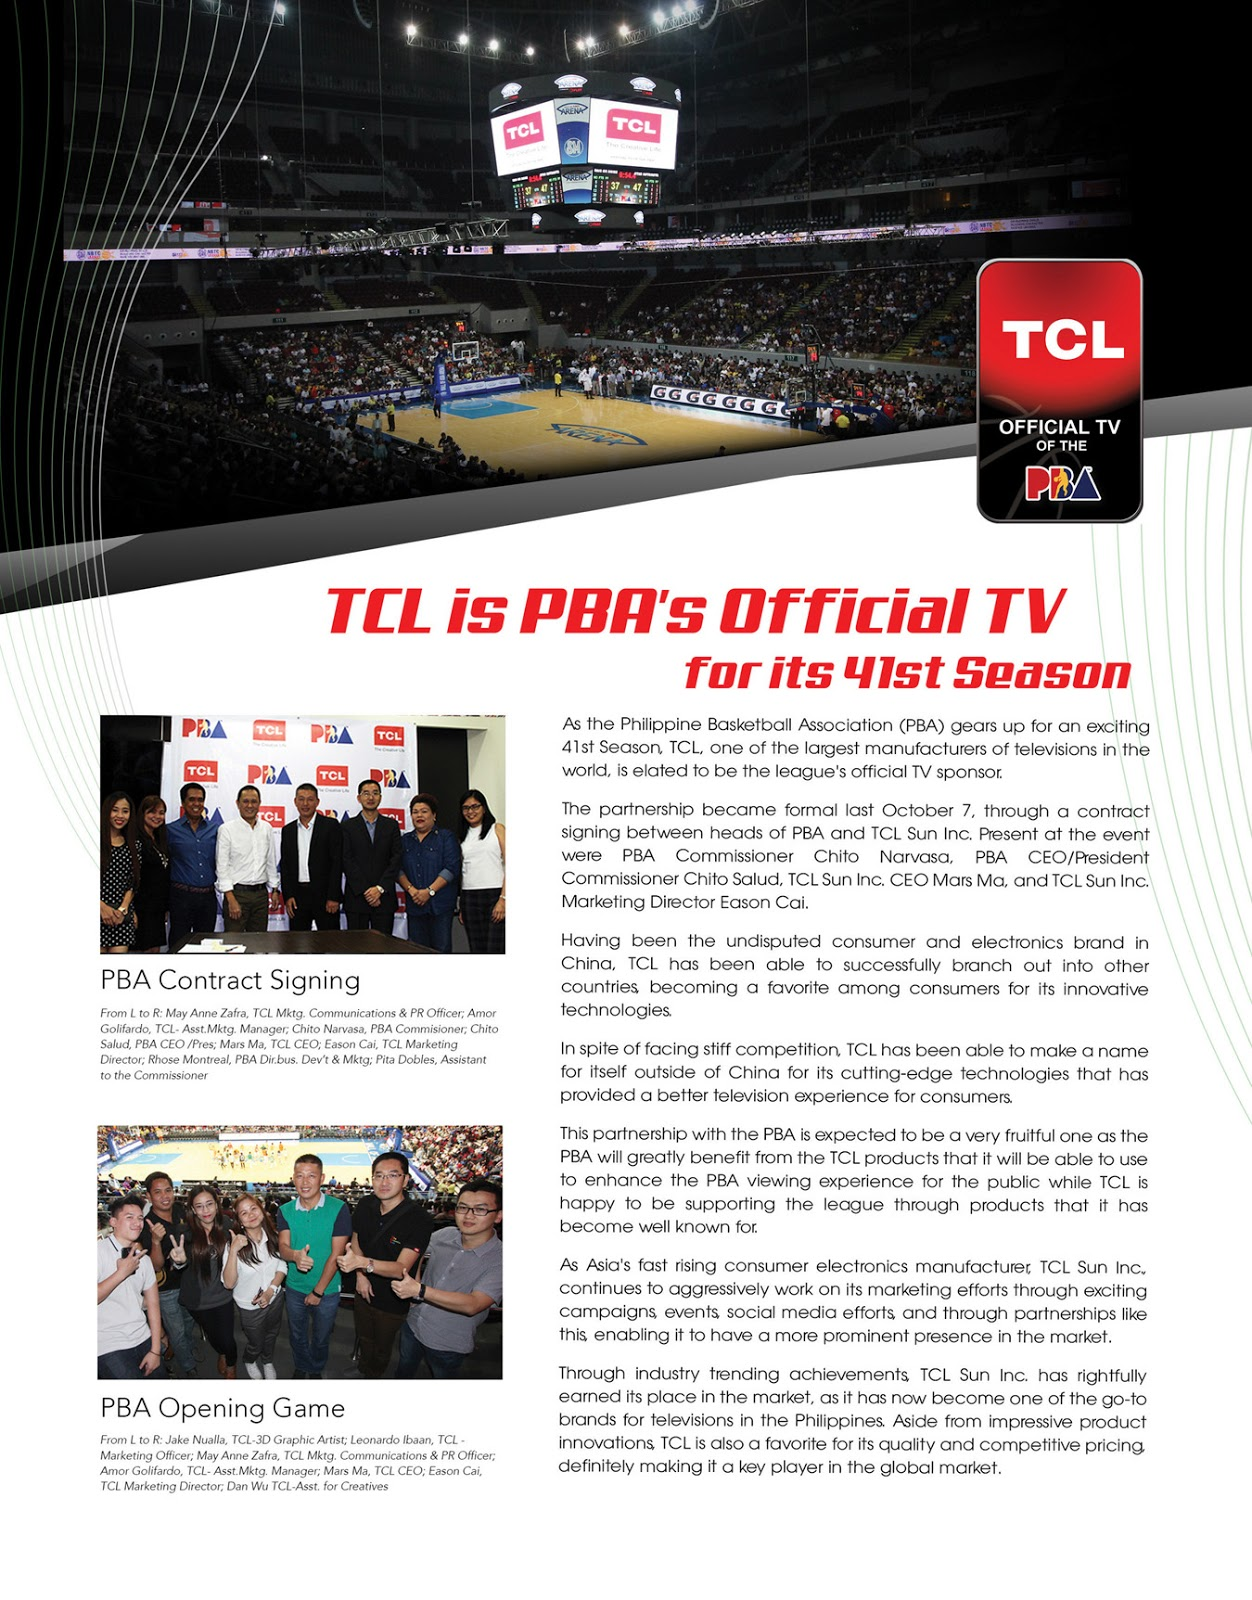 TCL for PBA's 41st Season